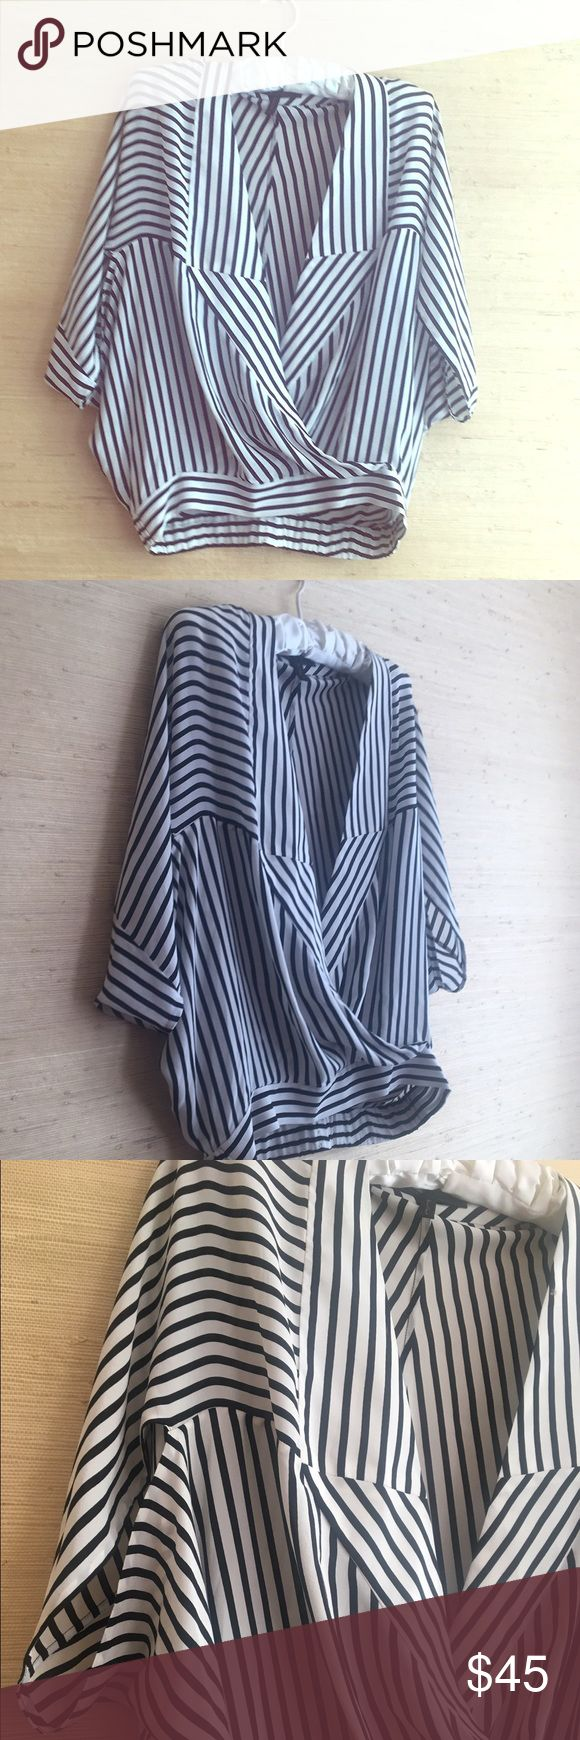 BCBG MazAzria silk blouse Black and white flowing silk BCBG MaxAzria blouse.  Worn once.  Looks great with black leggings and heels or boots.  Size S.  Dry Clean Only. BCBGMaxAzria Tops Blouses